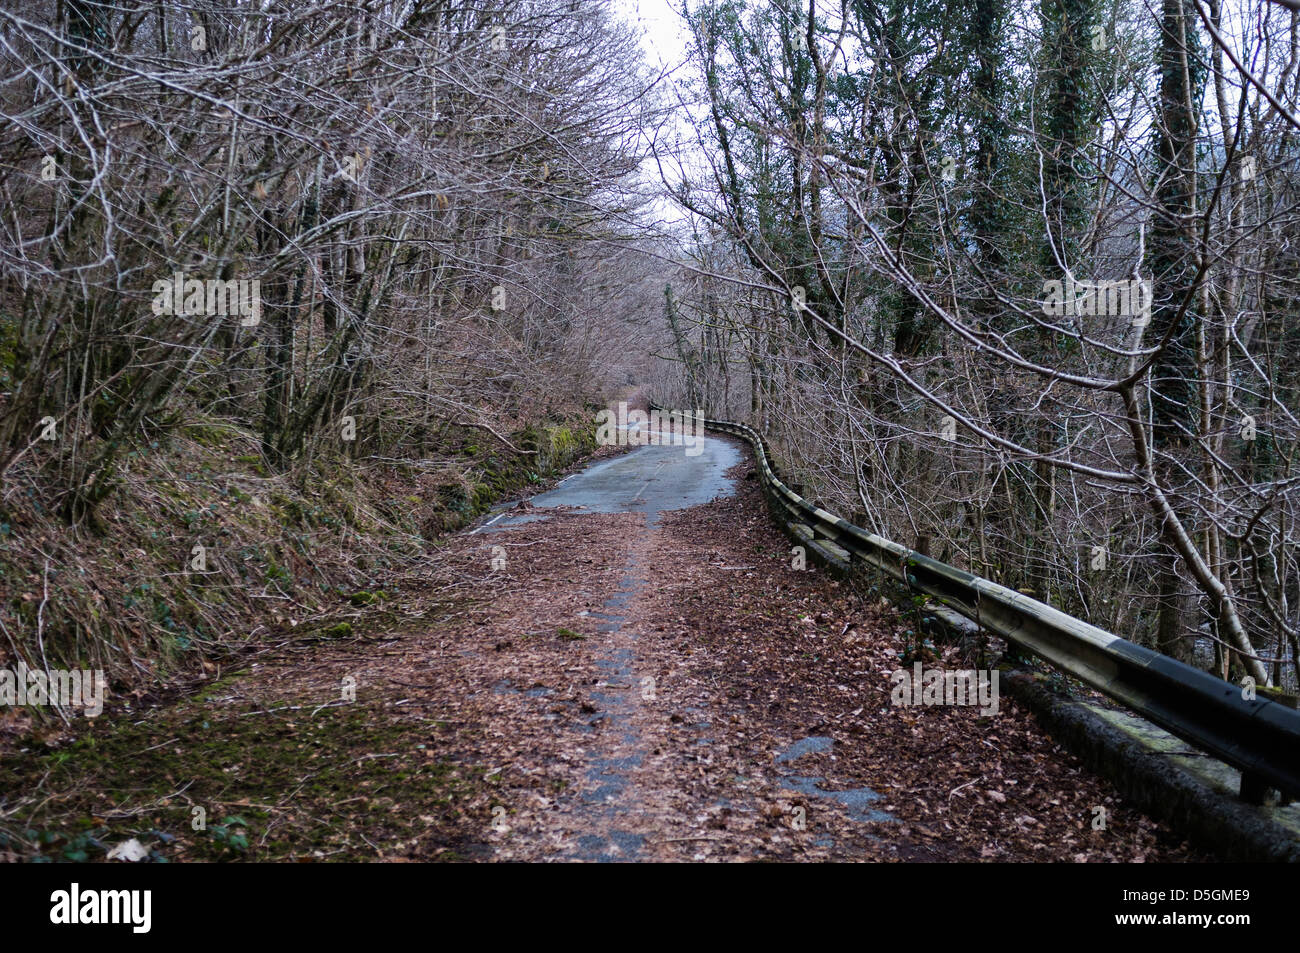 A stretch of abandoned A494 trunk road, overgrown and and being reclaimed by nature, Rhydymain Wales UK Stock Photo